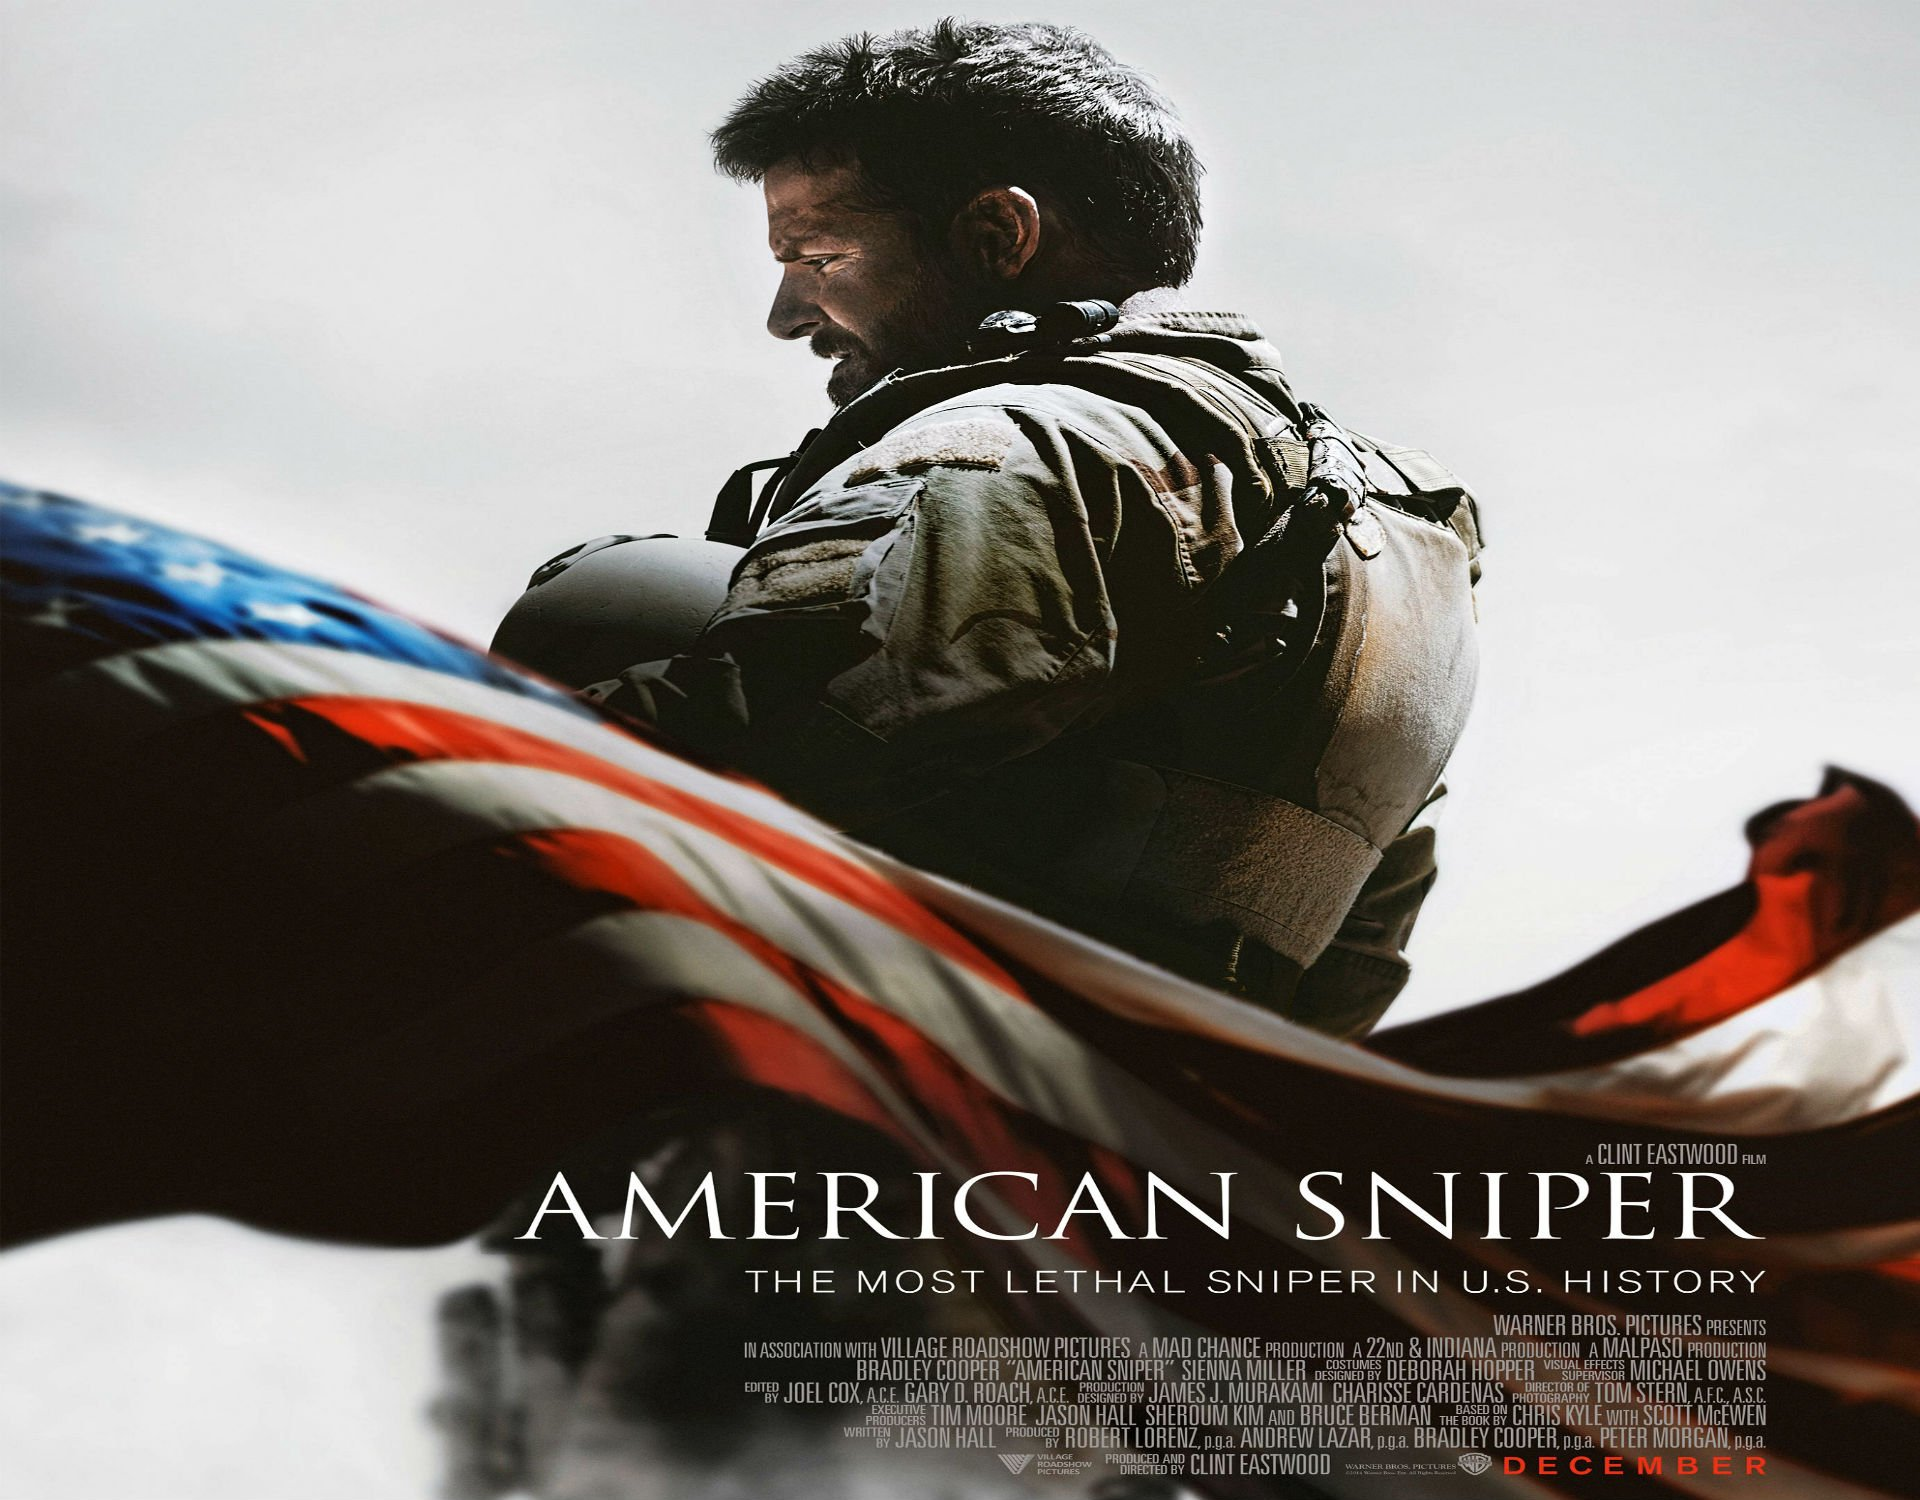 AMERICAN SNIPER biography military war fighting navy seal action clint 1920x1500